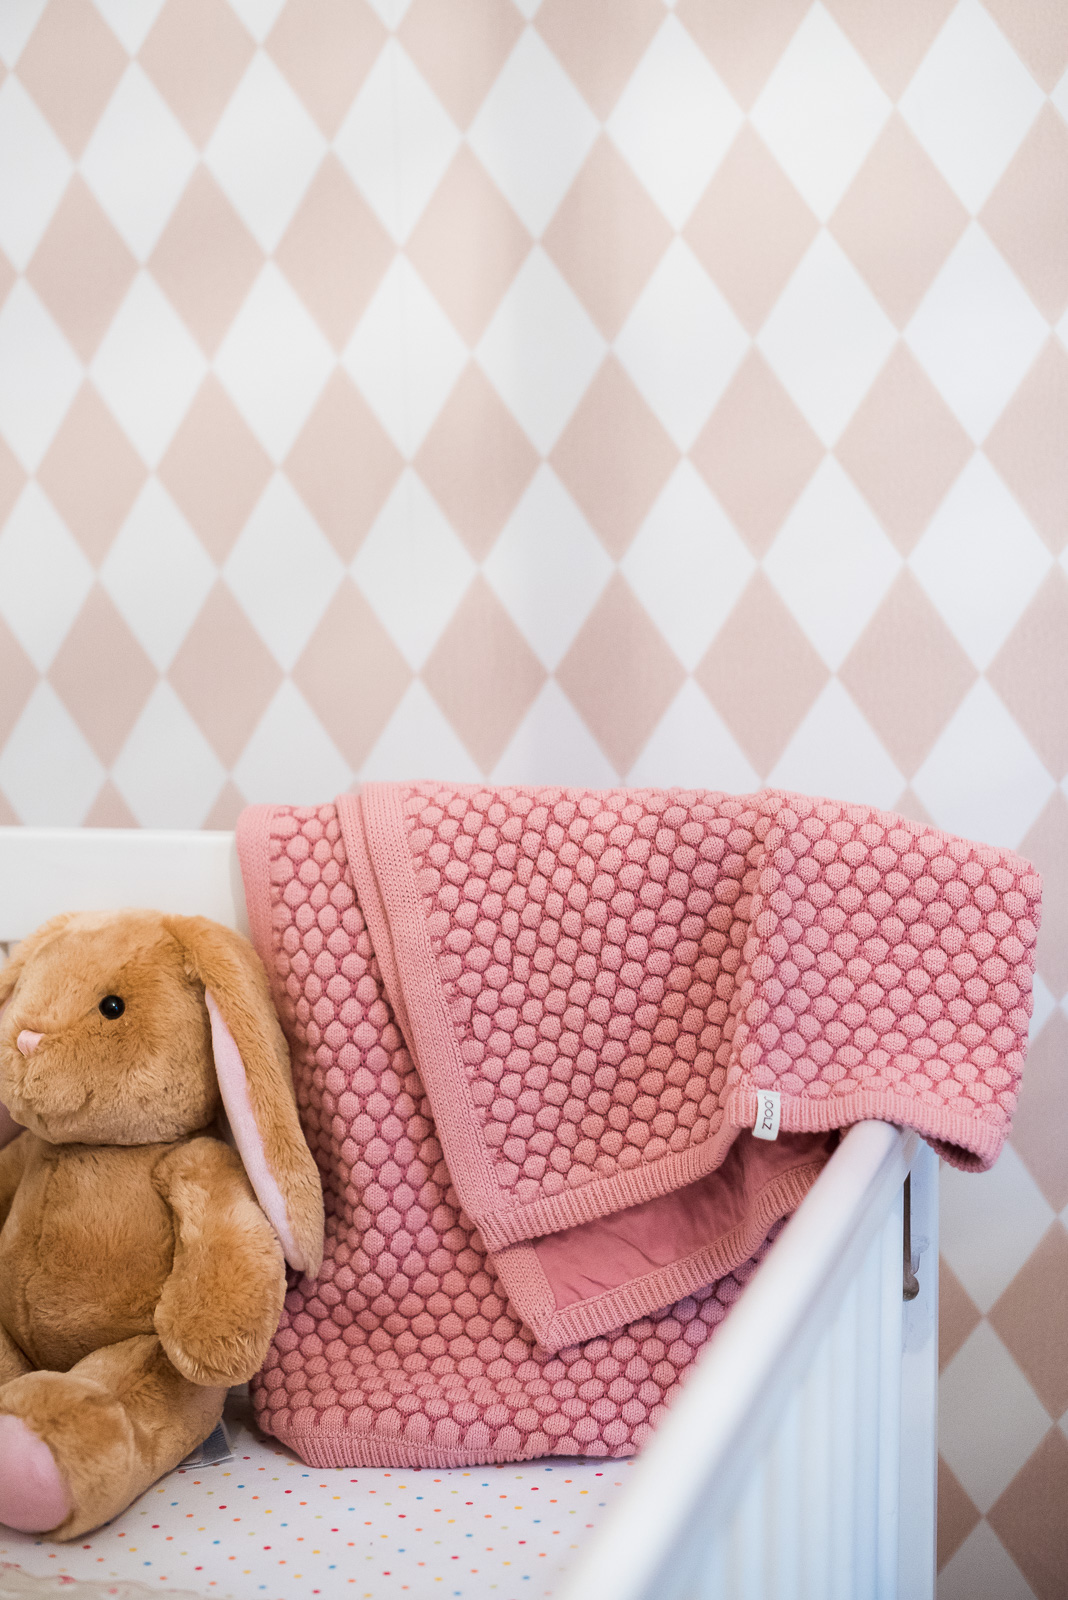 120a16846 Stylish and Organic - The Joolz Essentials Baby Blanket - BLOVED Blog